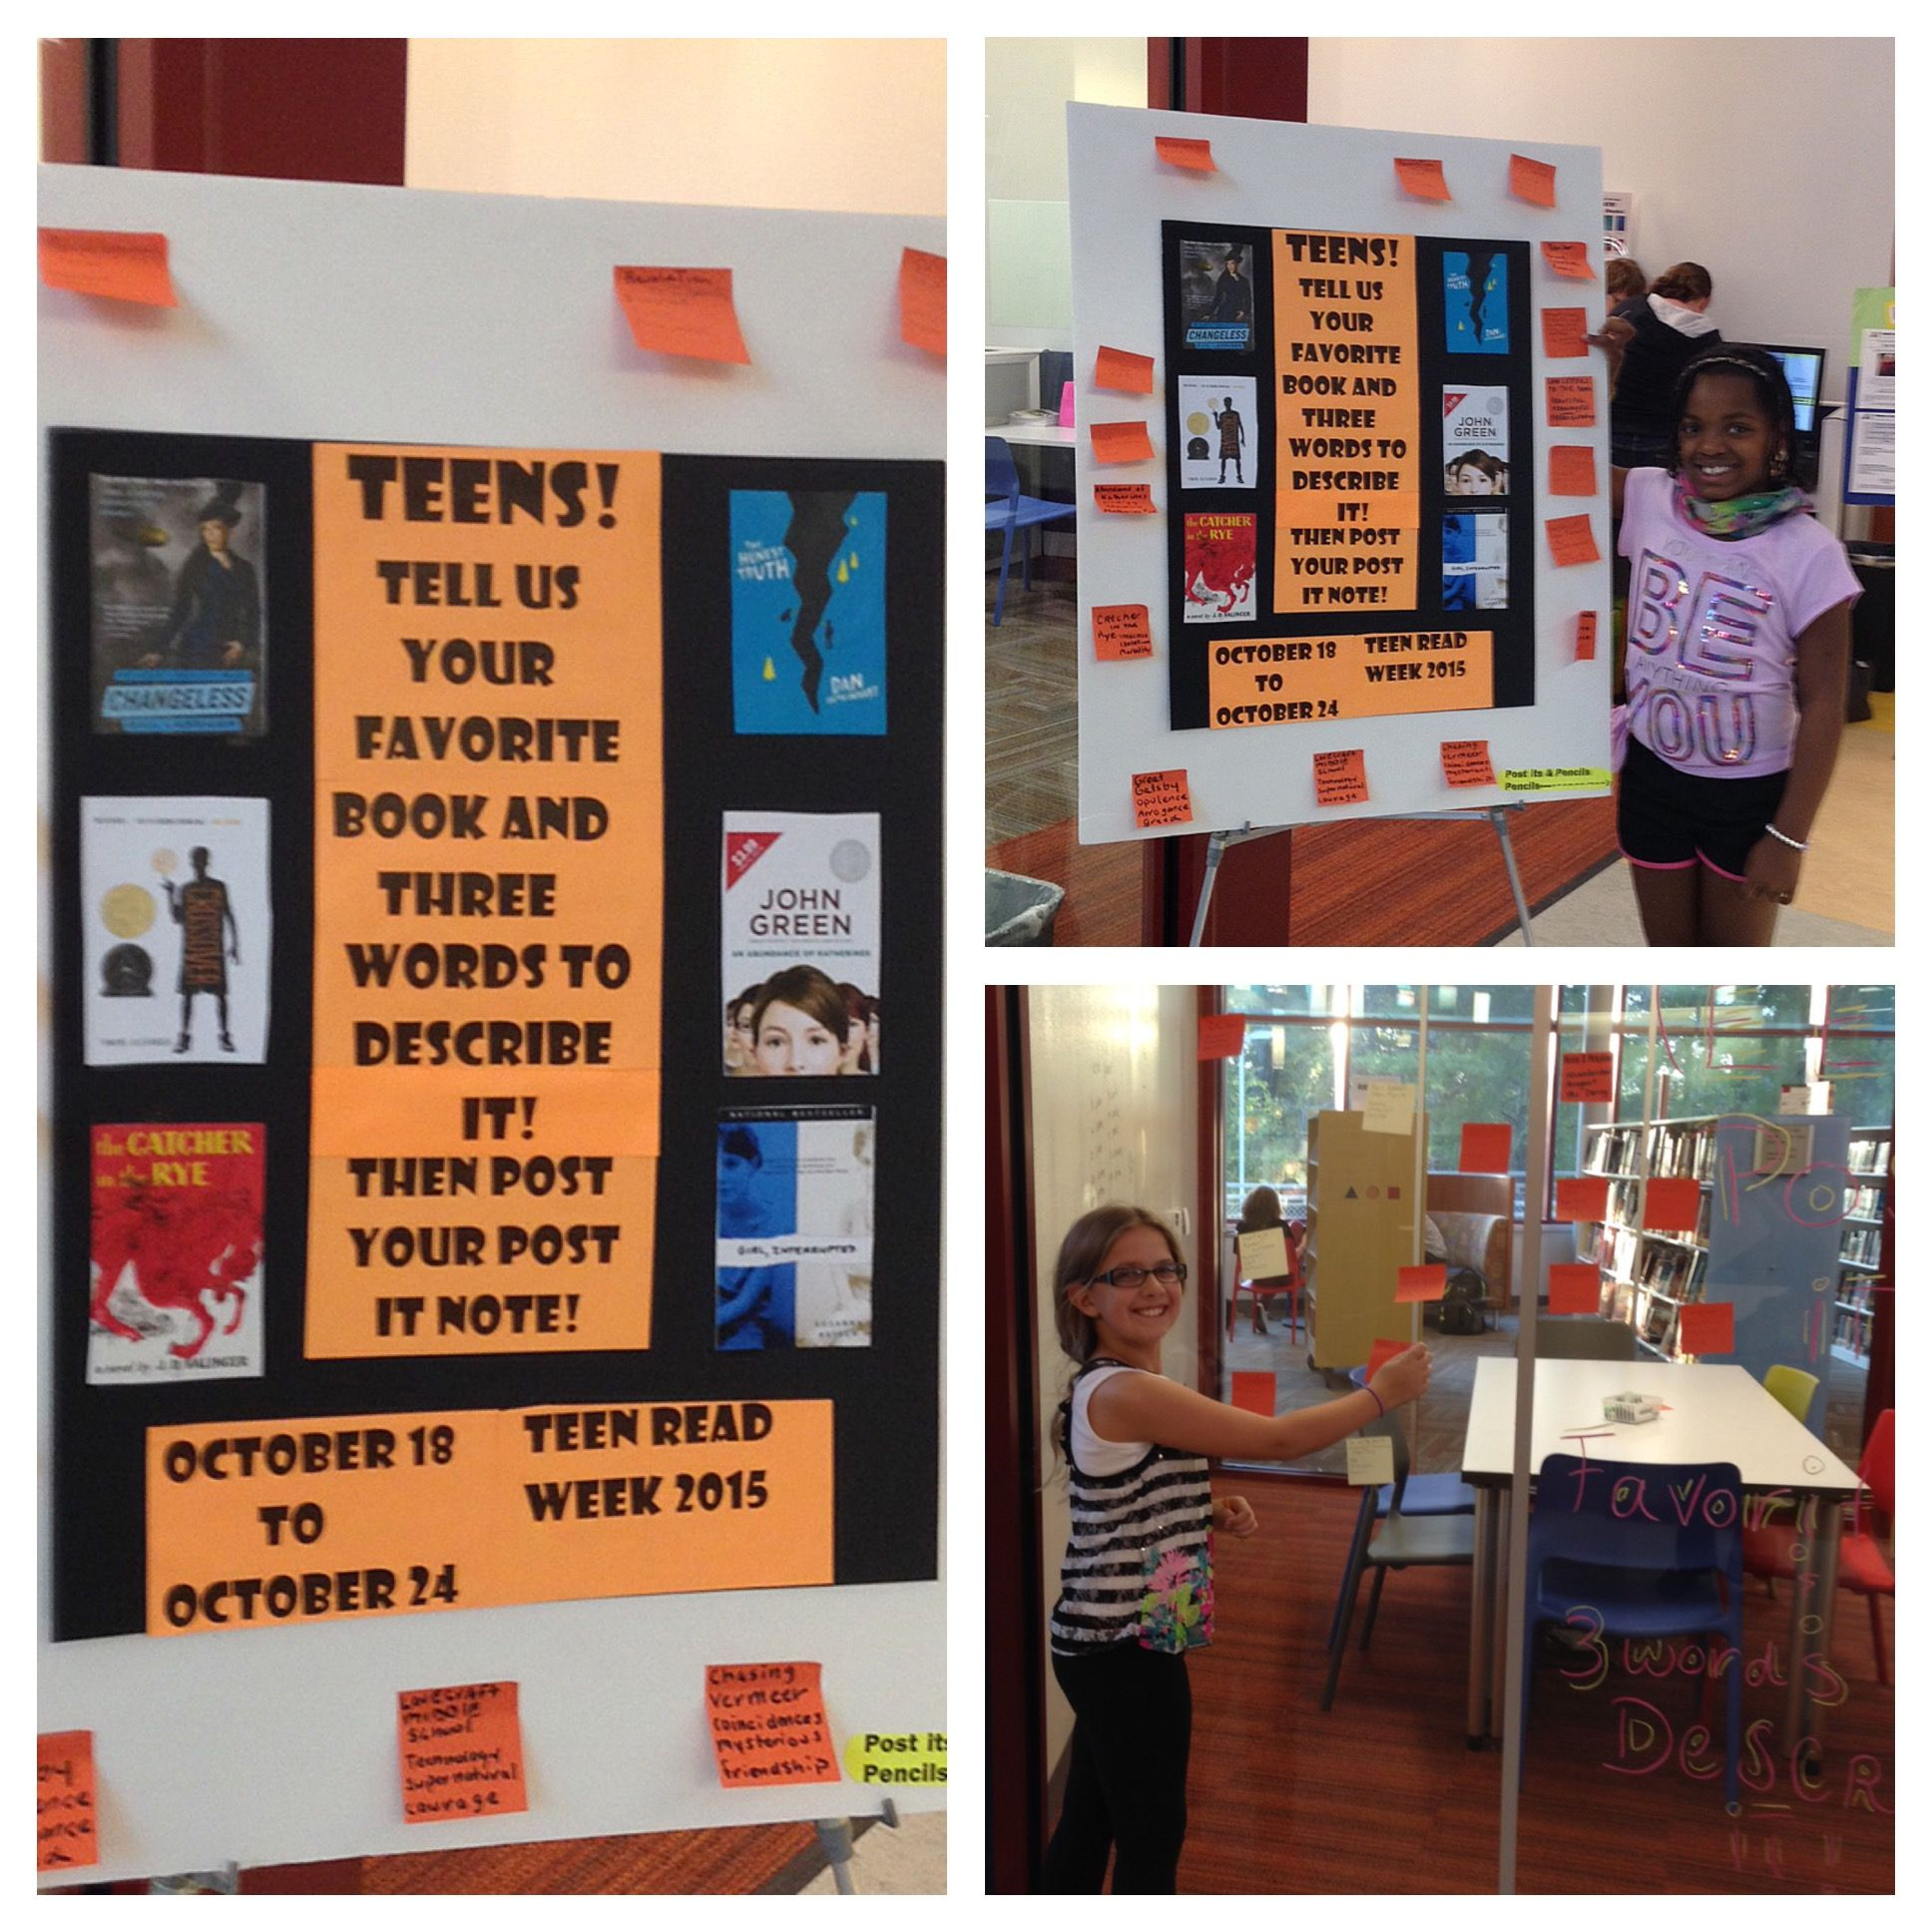 Teen Read Week Display At Olney Library With Teens